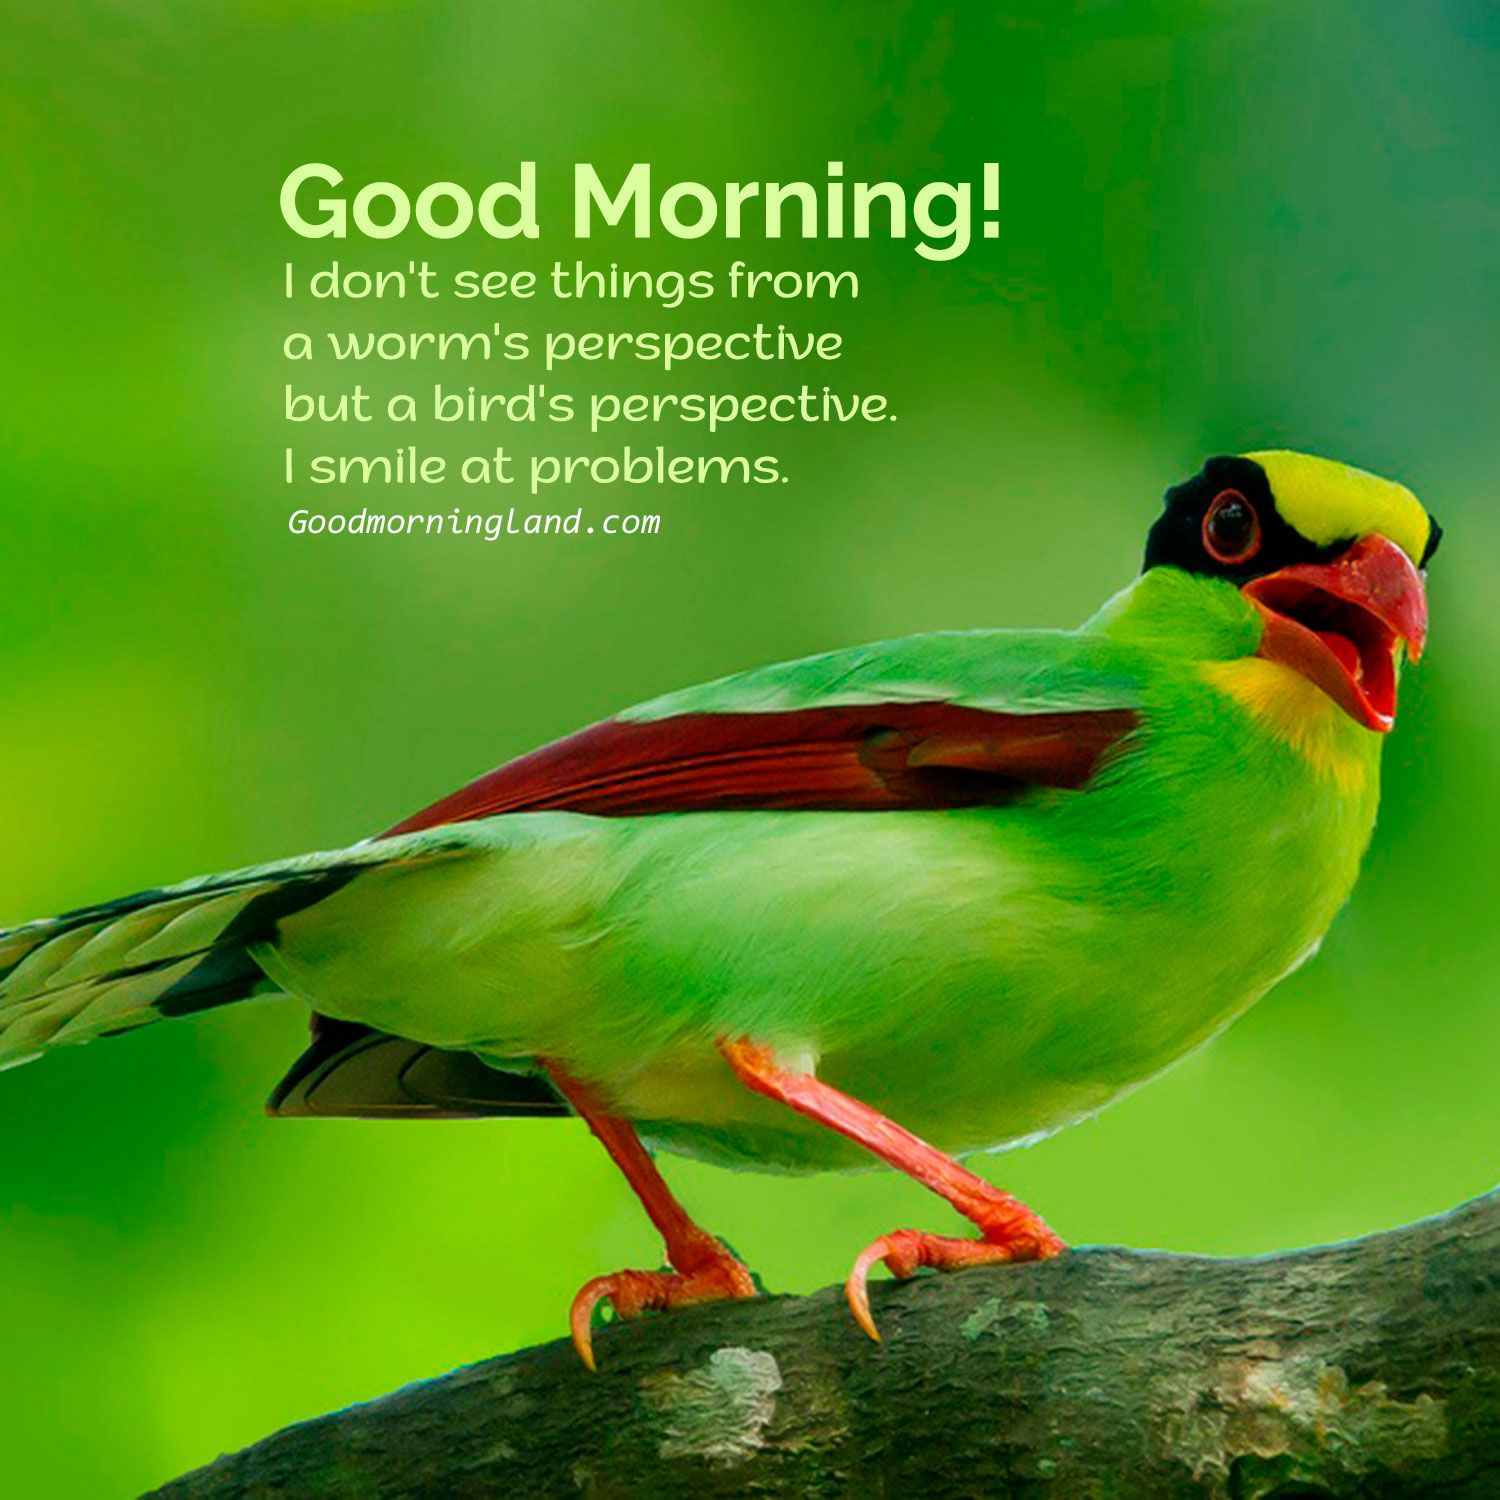 Good Morning Birds Graphics and Images ...